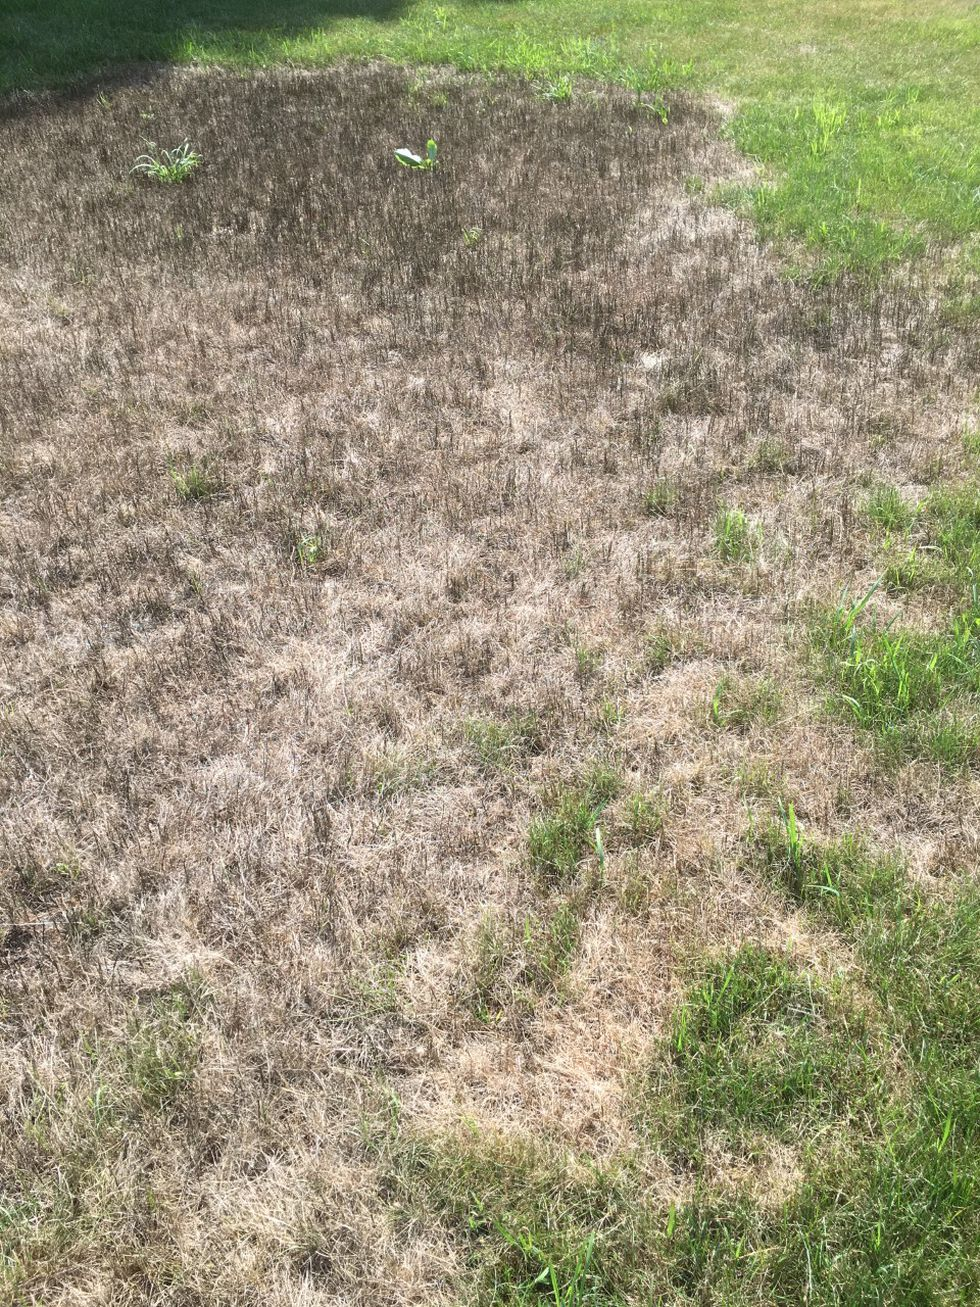 Black Lawns In Maine Caused By Fungus And Weather